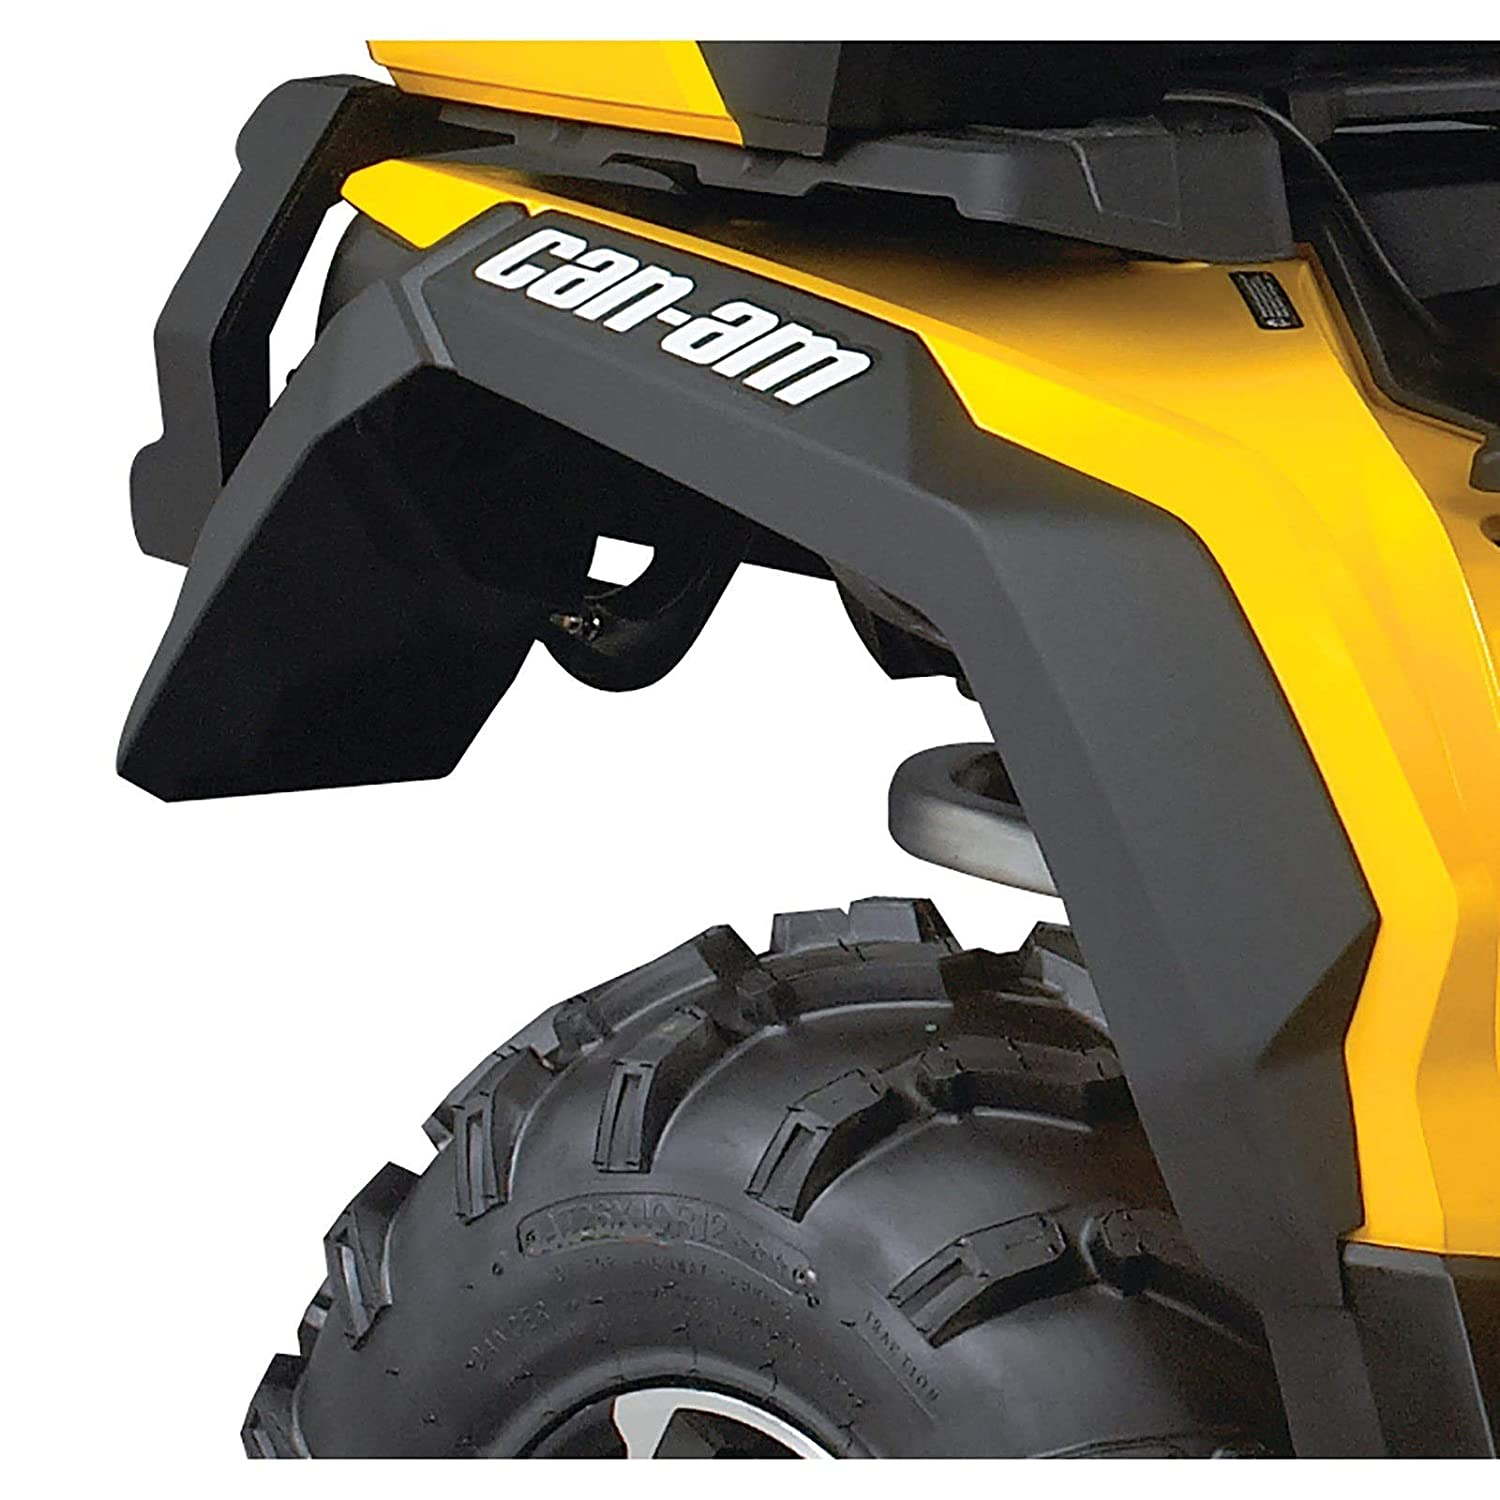 CAN-AM Fender Flares for Outlander for G2L T category 2015 /& up 715004487